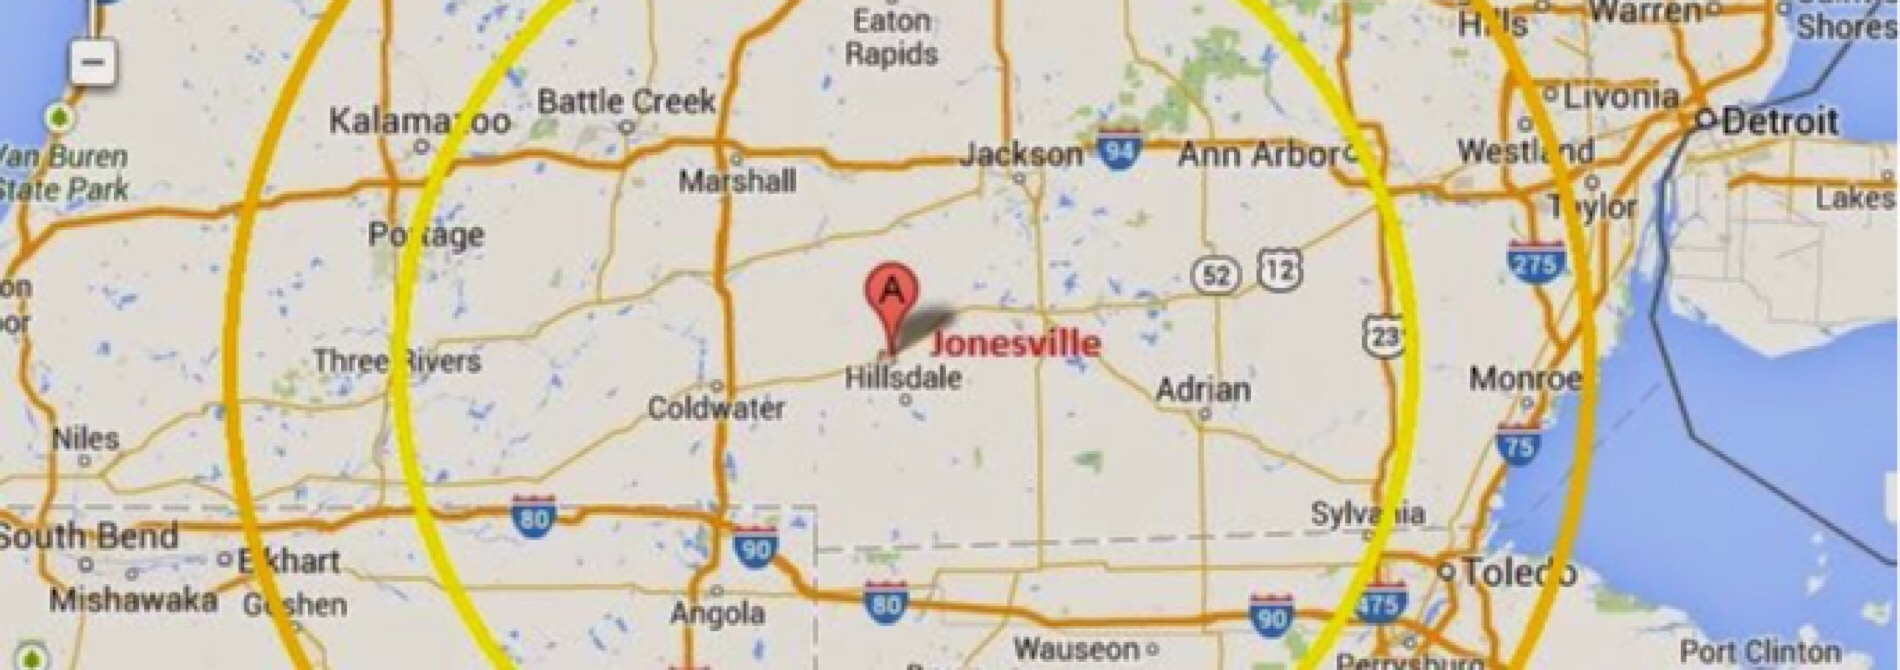 map of 100 mile radius jonesville mi